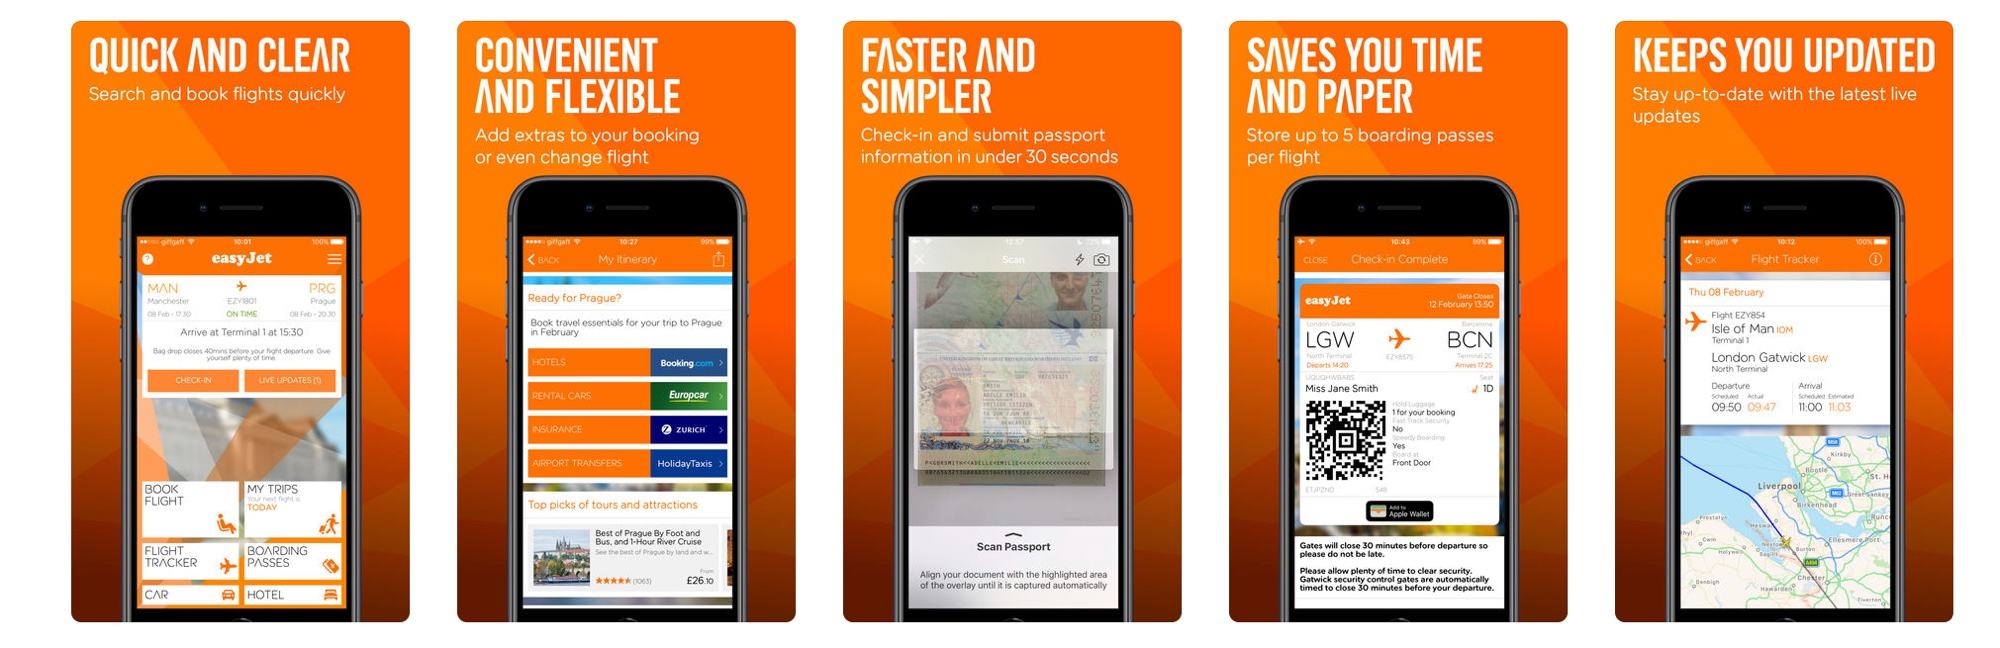 easyJet's app is tight as its plane's legroom.